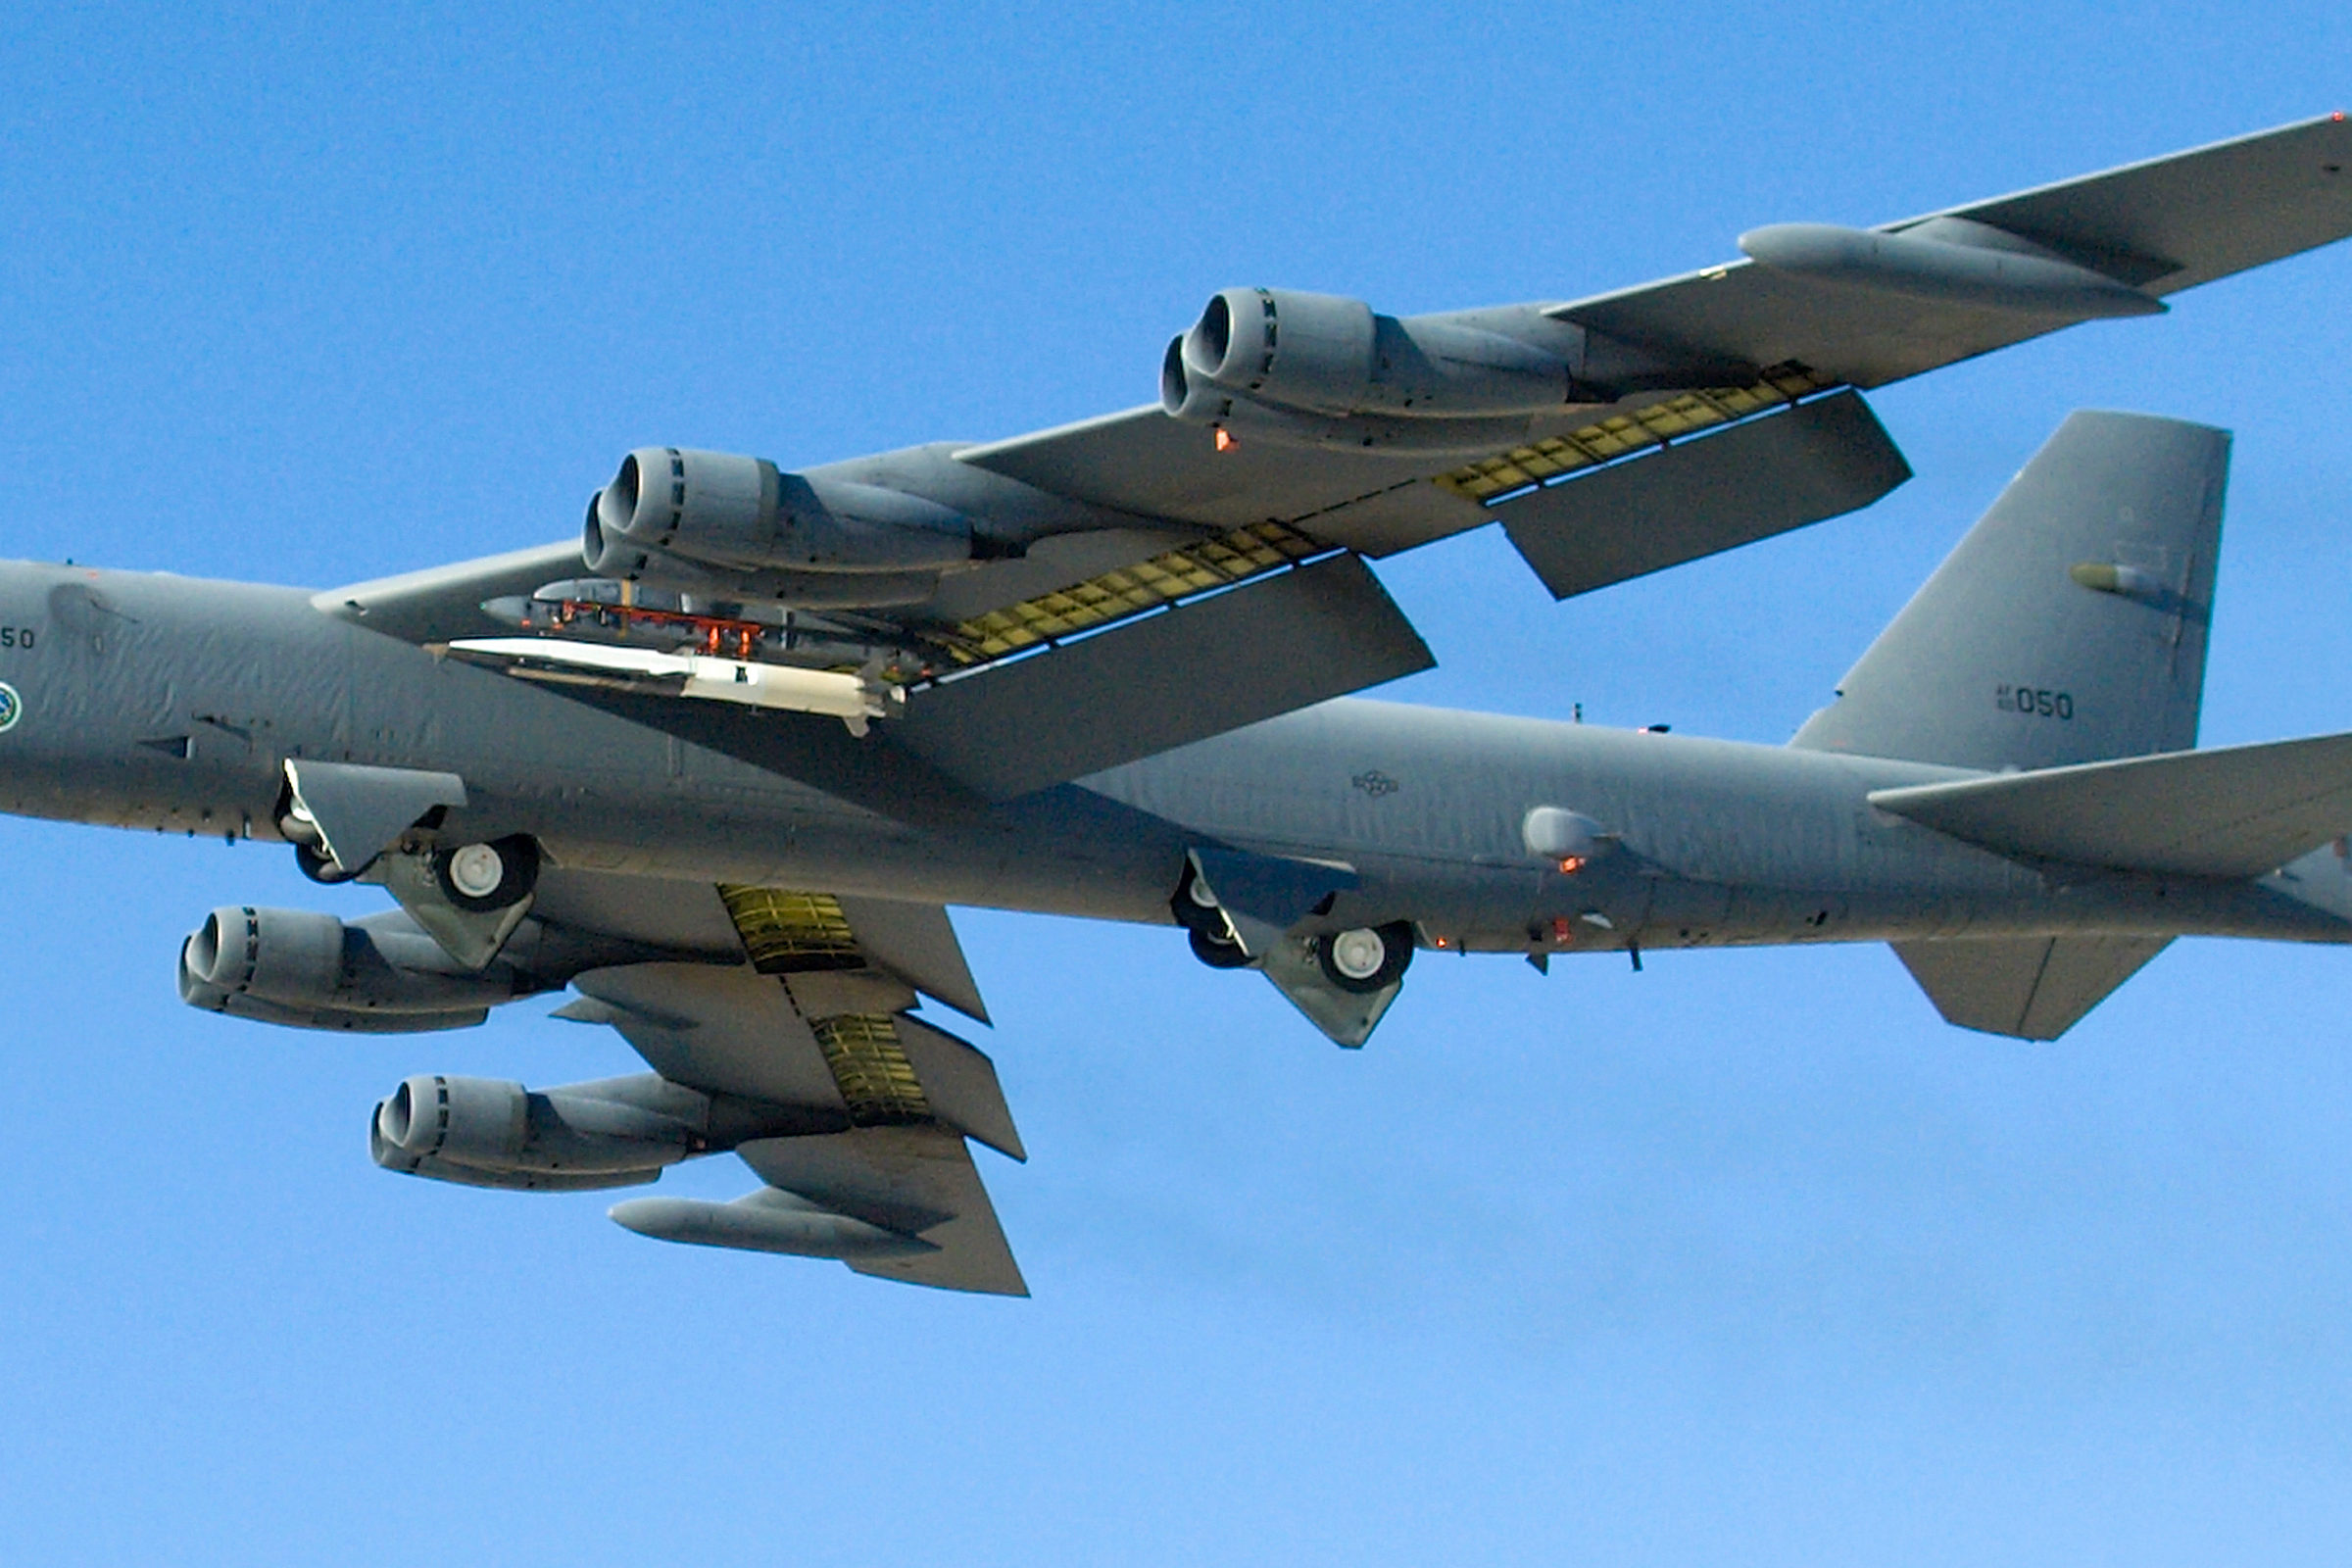 An X-51A Waverider plane